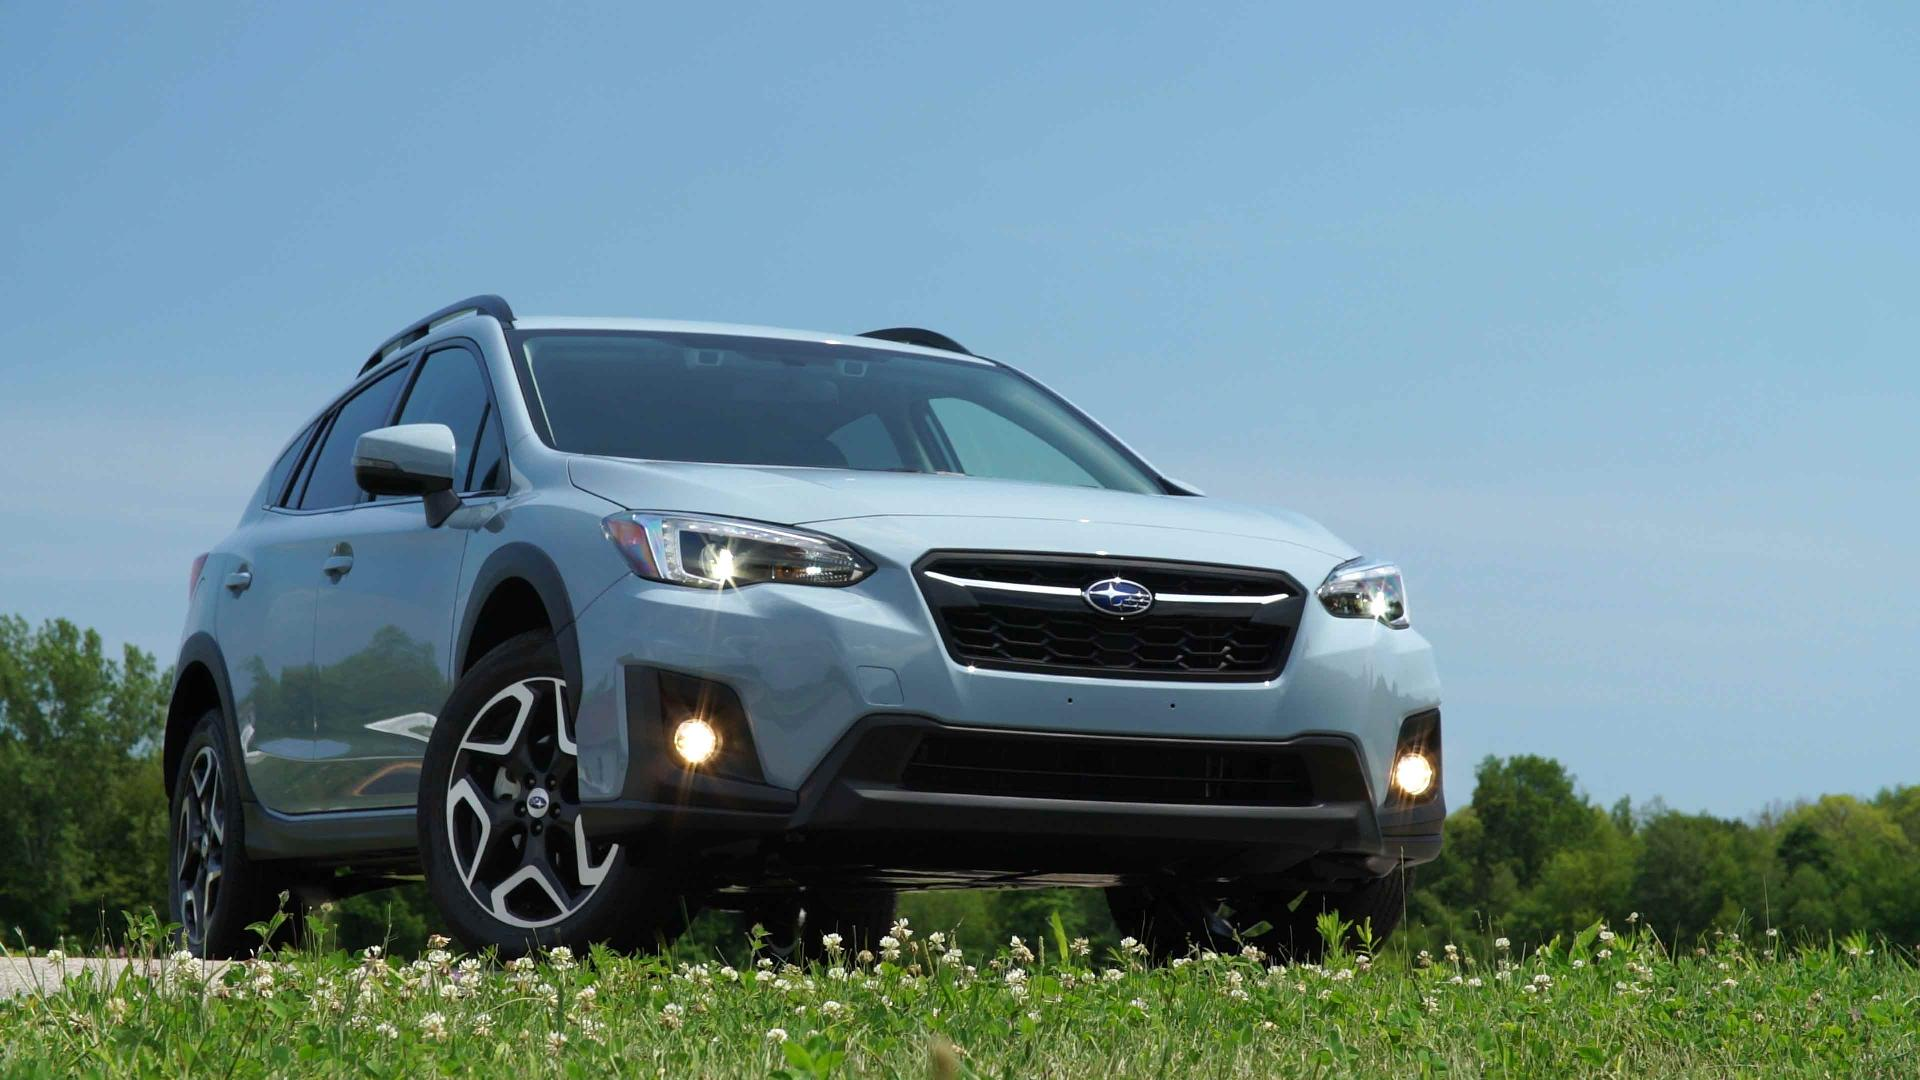 Used Car Batteries >> All-New 2018 Subaru Crosstrek Brings Rugged Looks and Refinement - Consumer Reports